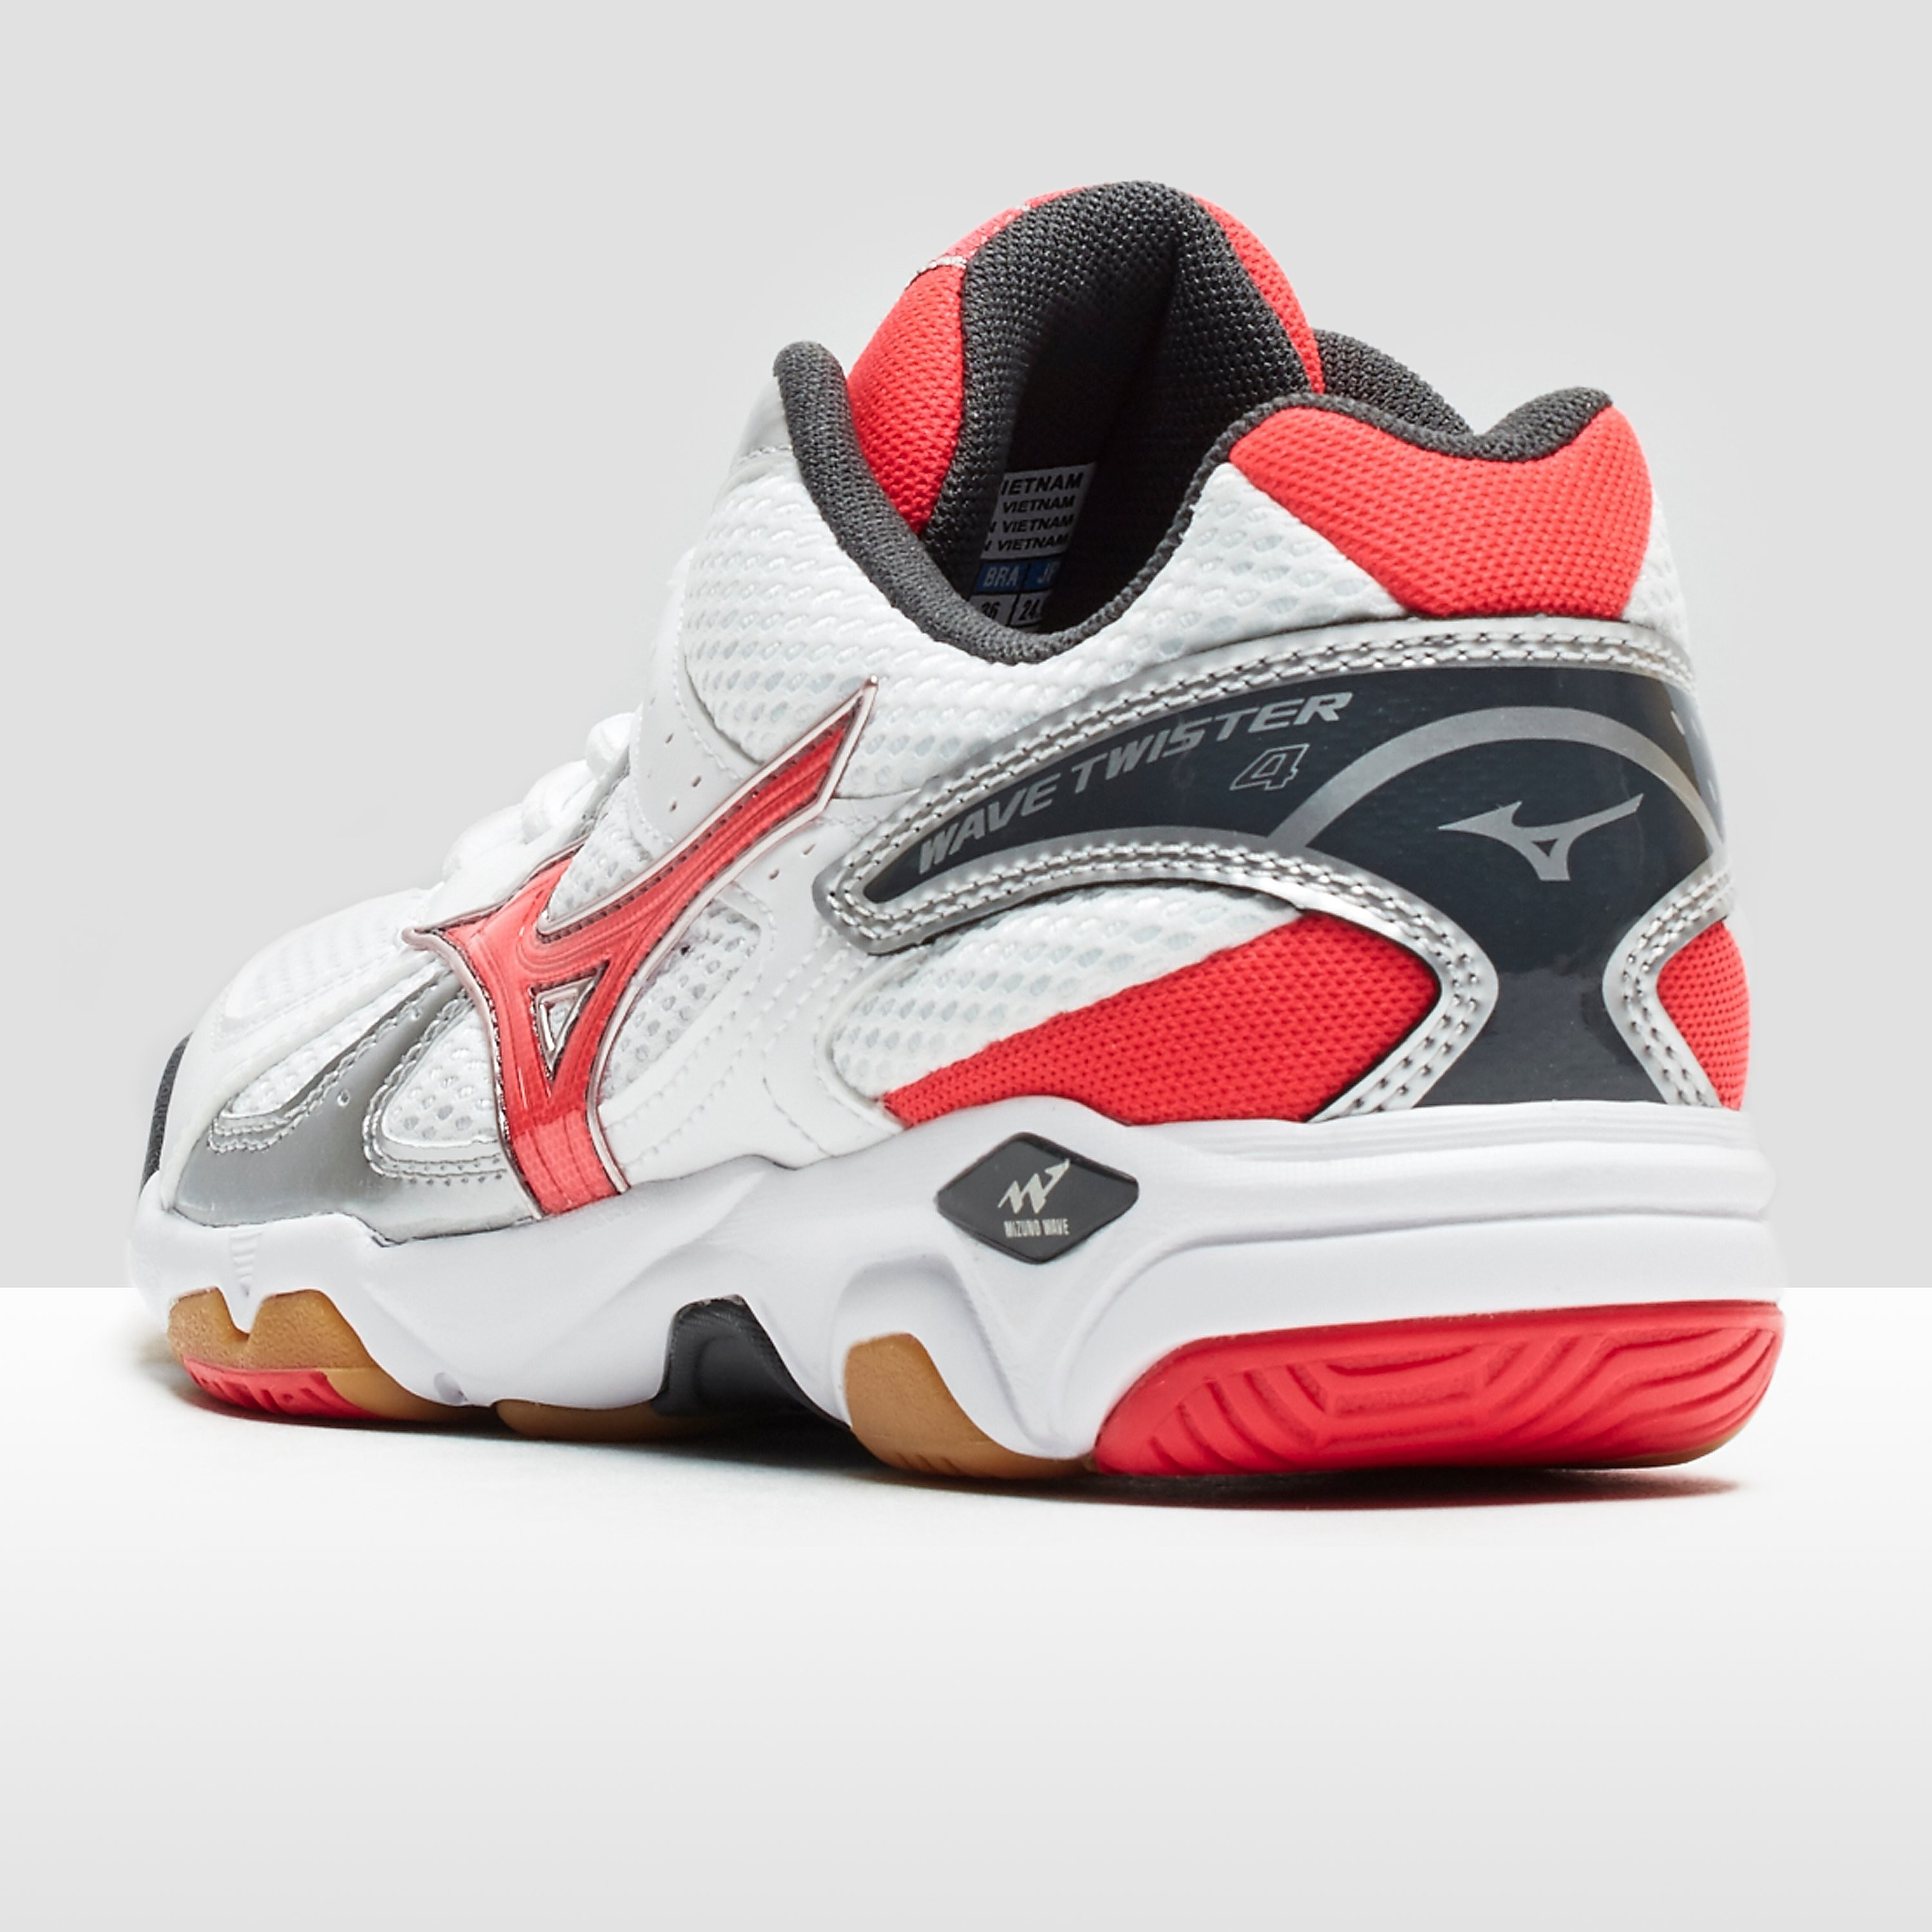 Mizuno Wave Twister Women's Multi-Court Shoe